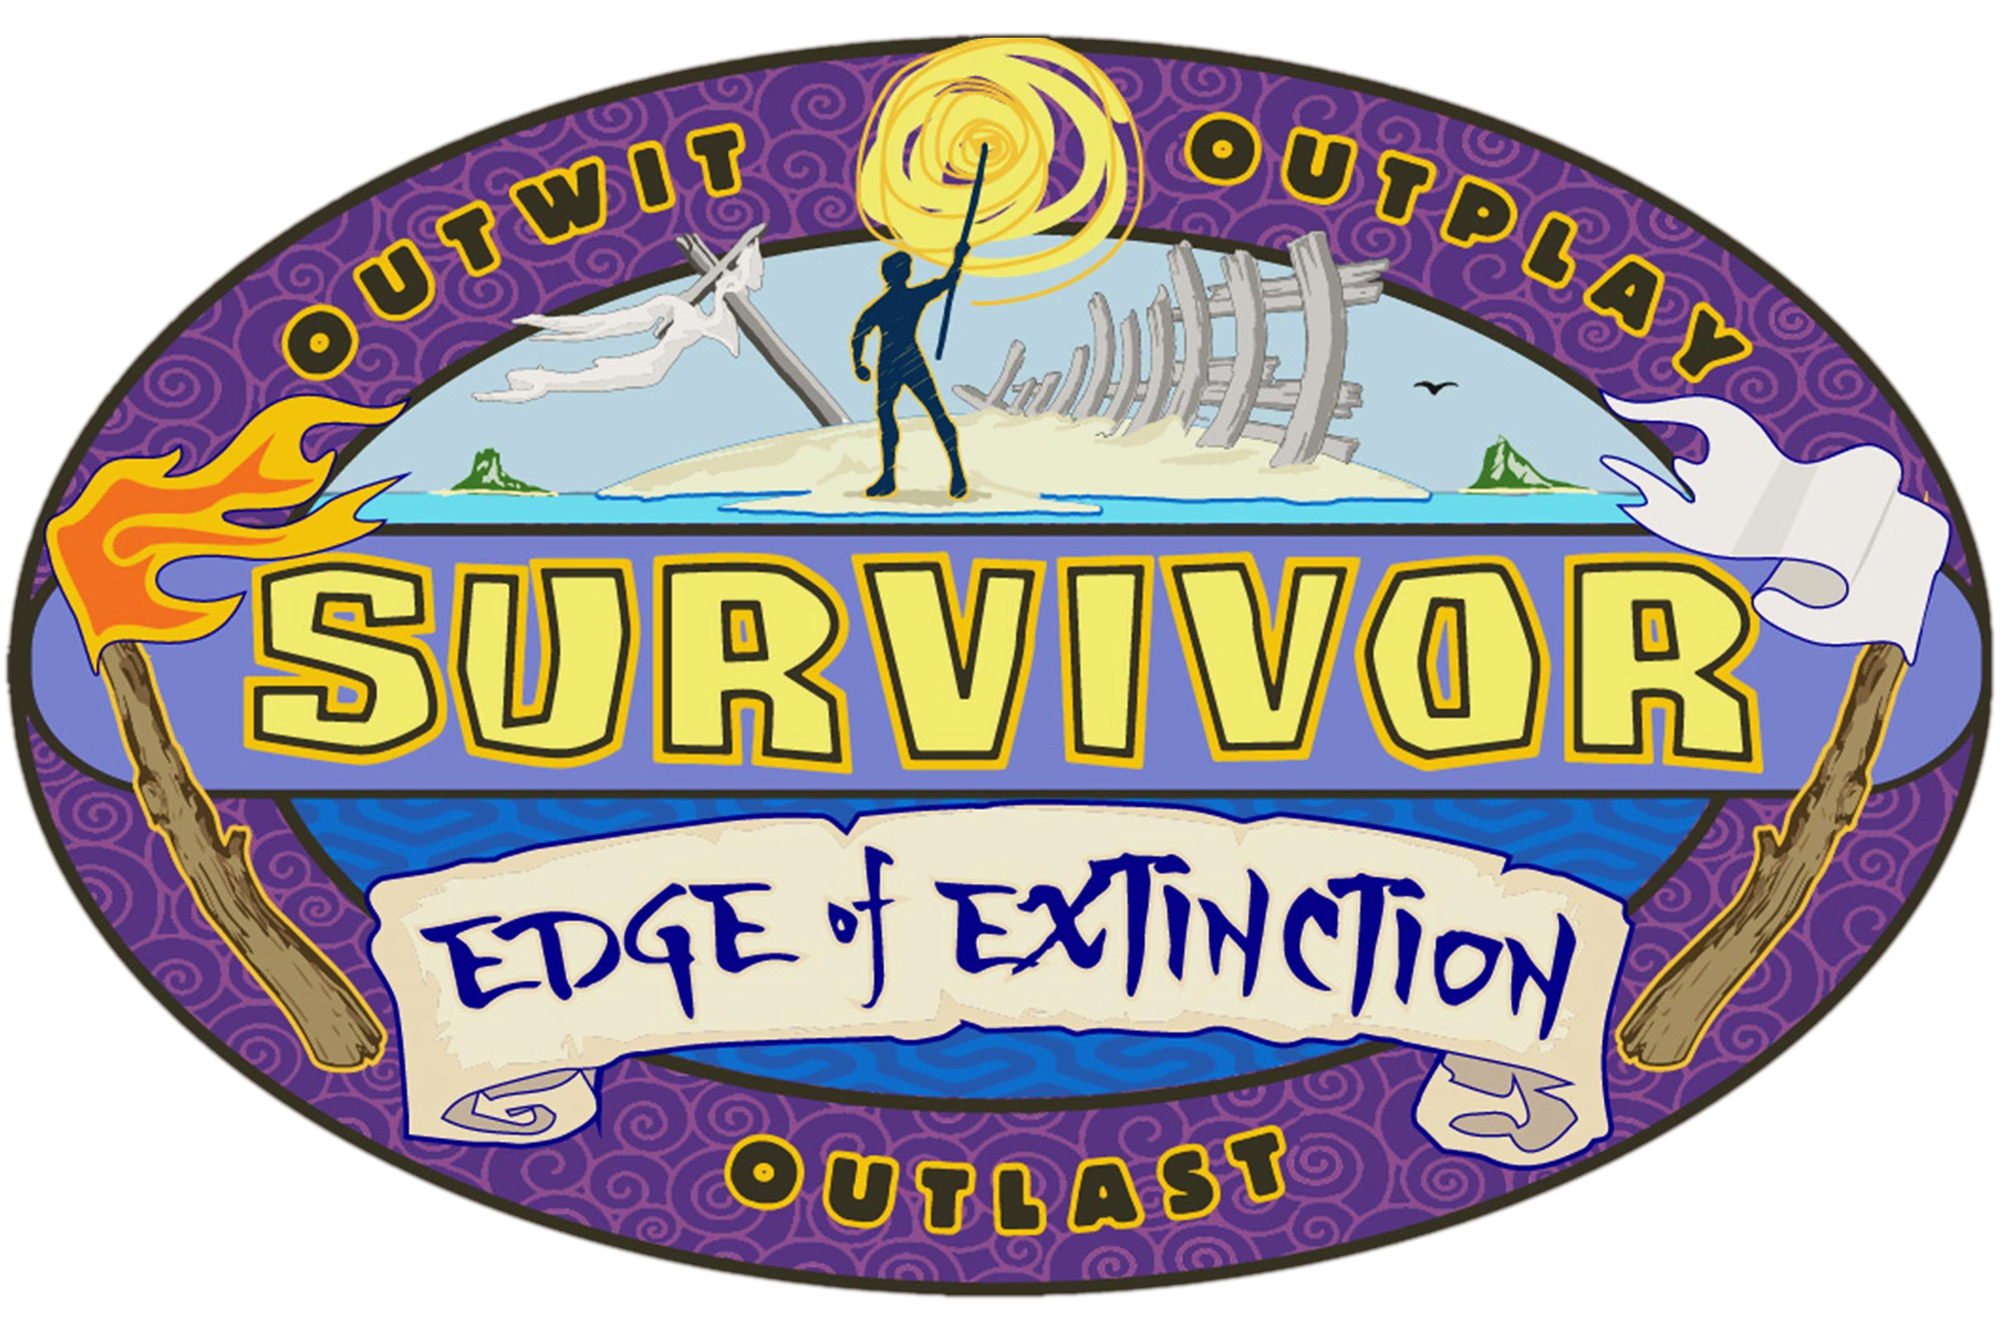 Survivor: Edge of Extinction Source: Survivor fandom